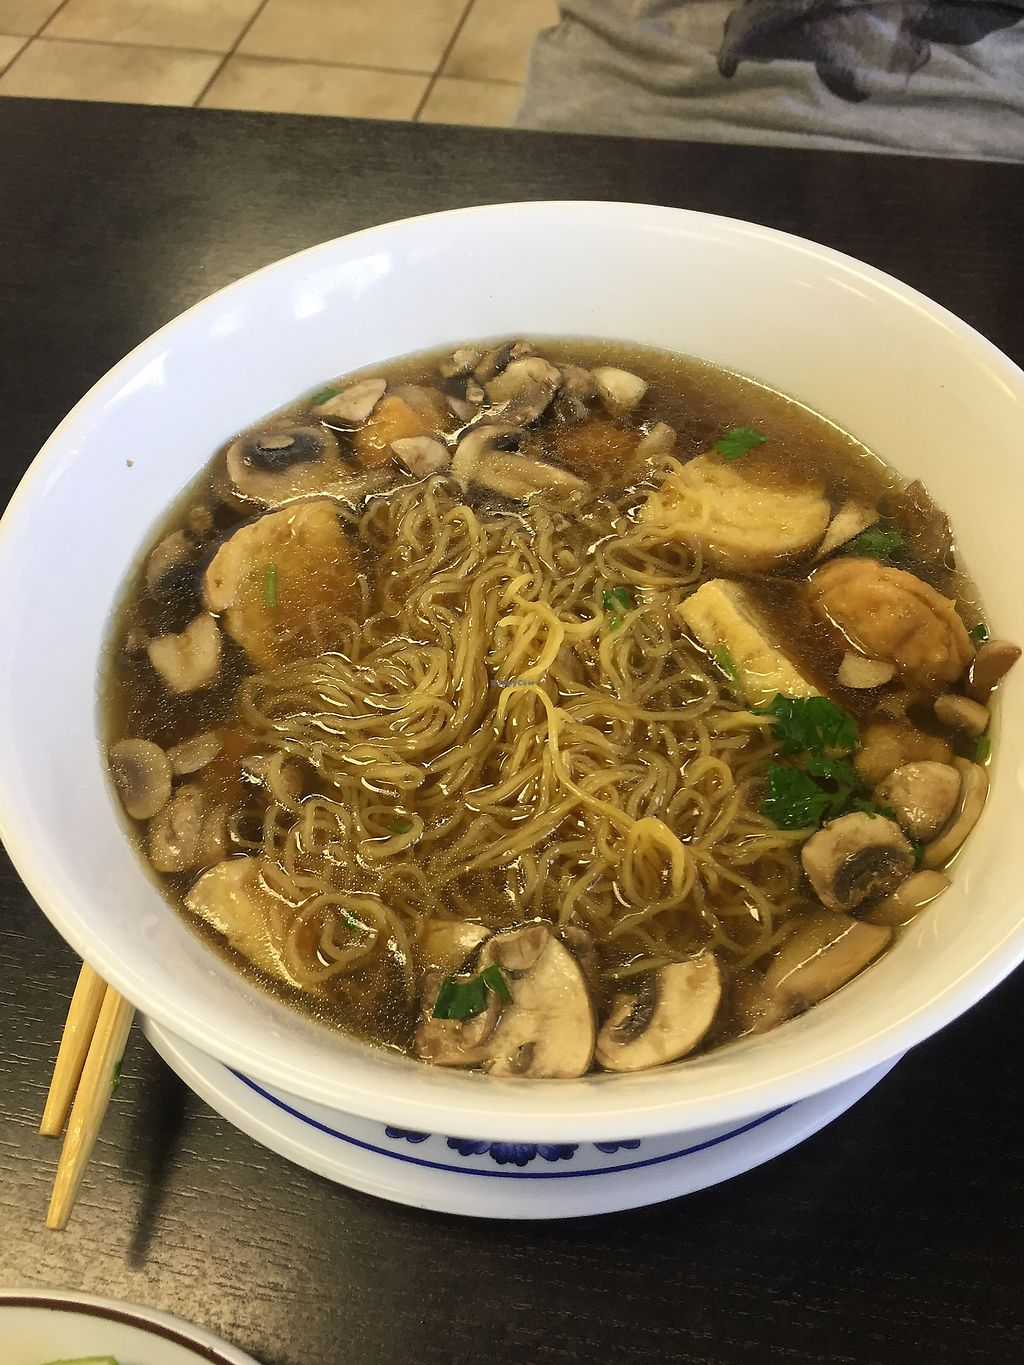 """Photo of Veggie Life Restaurant  by <a href=""""/members/profile/R-MV"""">R-MV</a> <br/>Yellow noodle wonton soup <br/> August 24, 2017  - <a href='/contact/abuse/image/14017/296866'>Report</a>"""